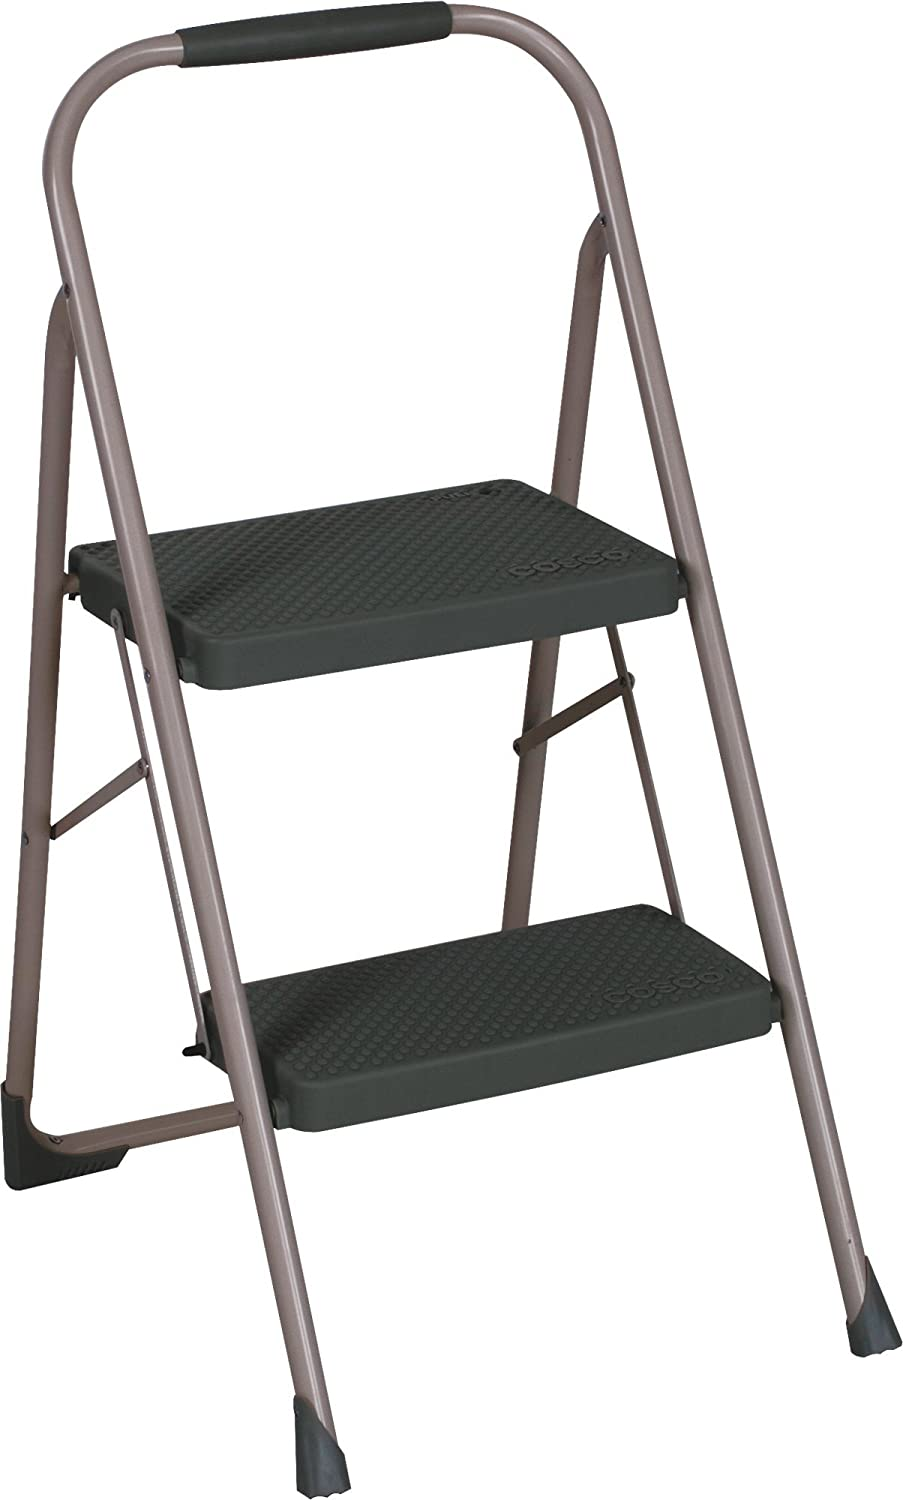 Cosco 11308PBL1E Two Step Big Step Folding Step Stool with Rubber Hand Grip at Sears.com